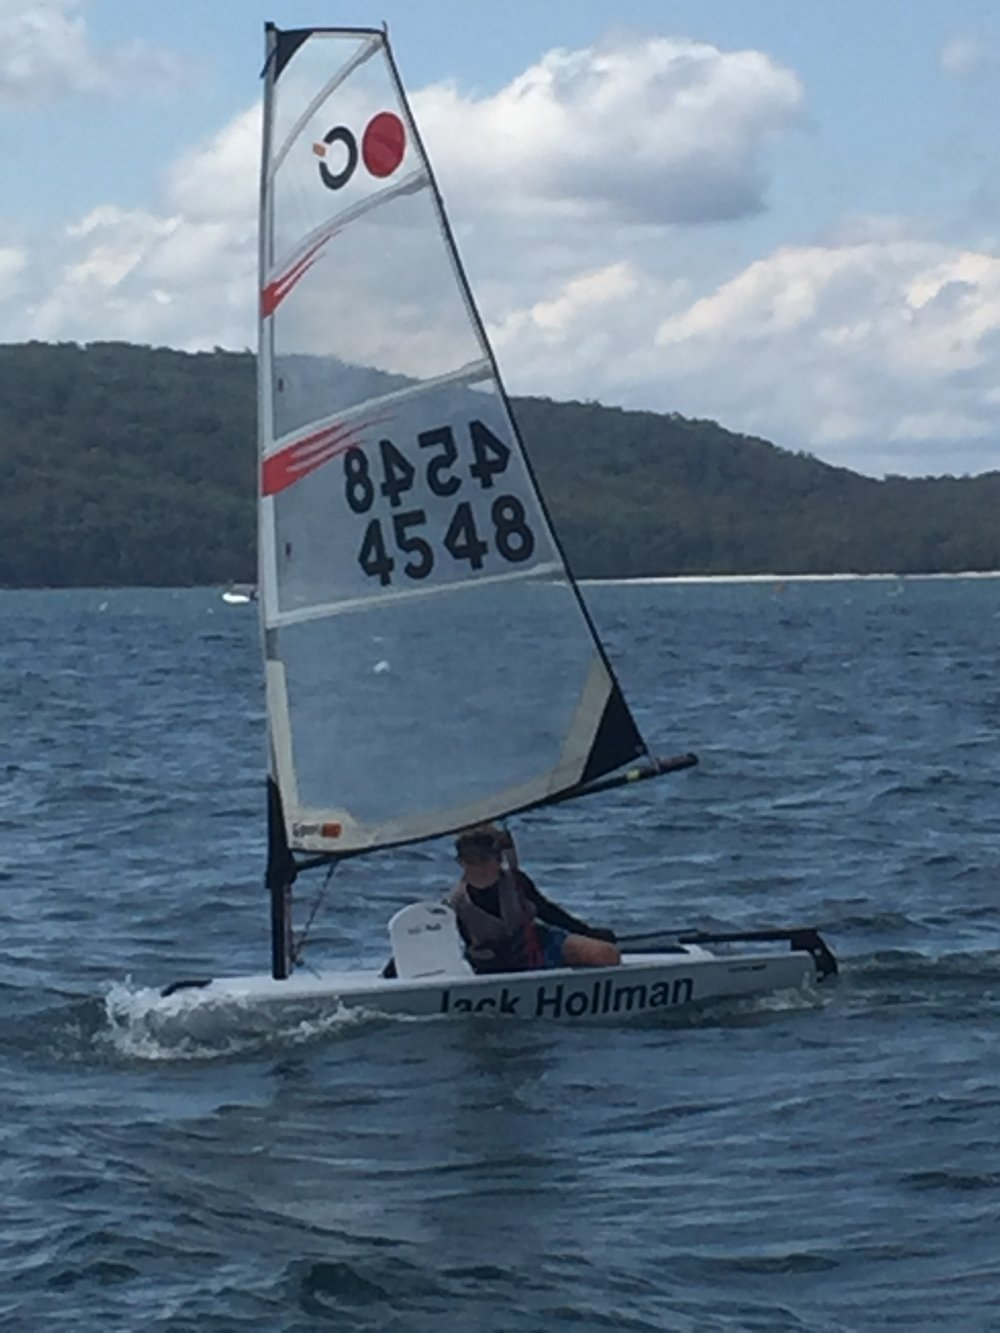 First solo sail